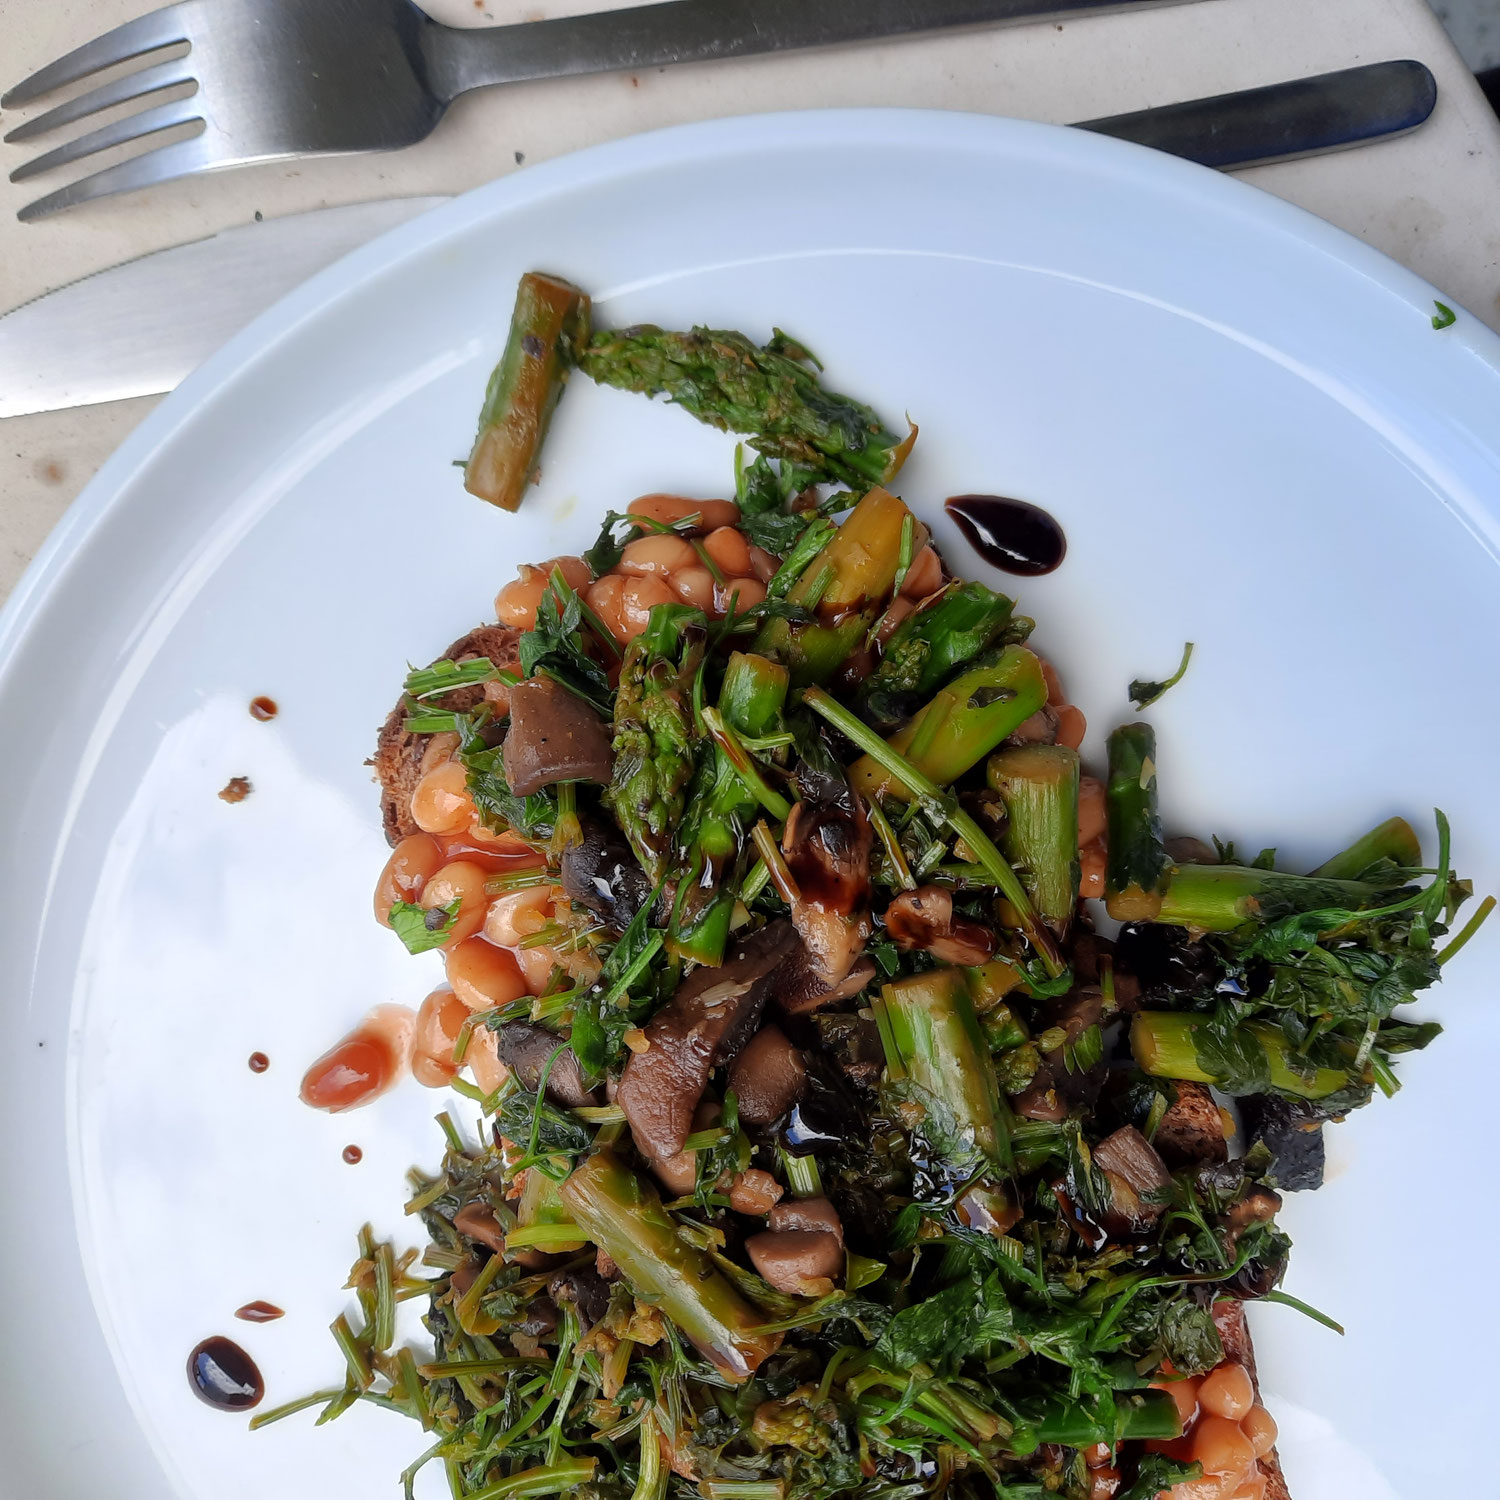 Herbalized Asparagus on Rye Bread